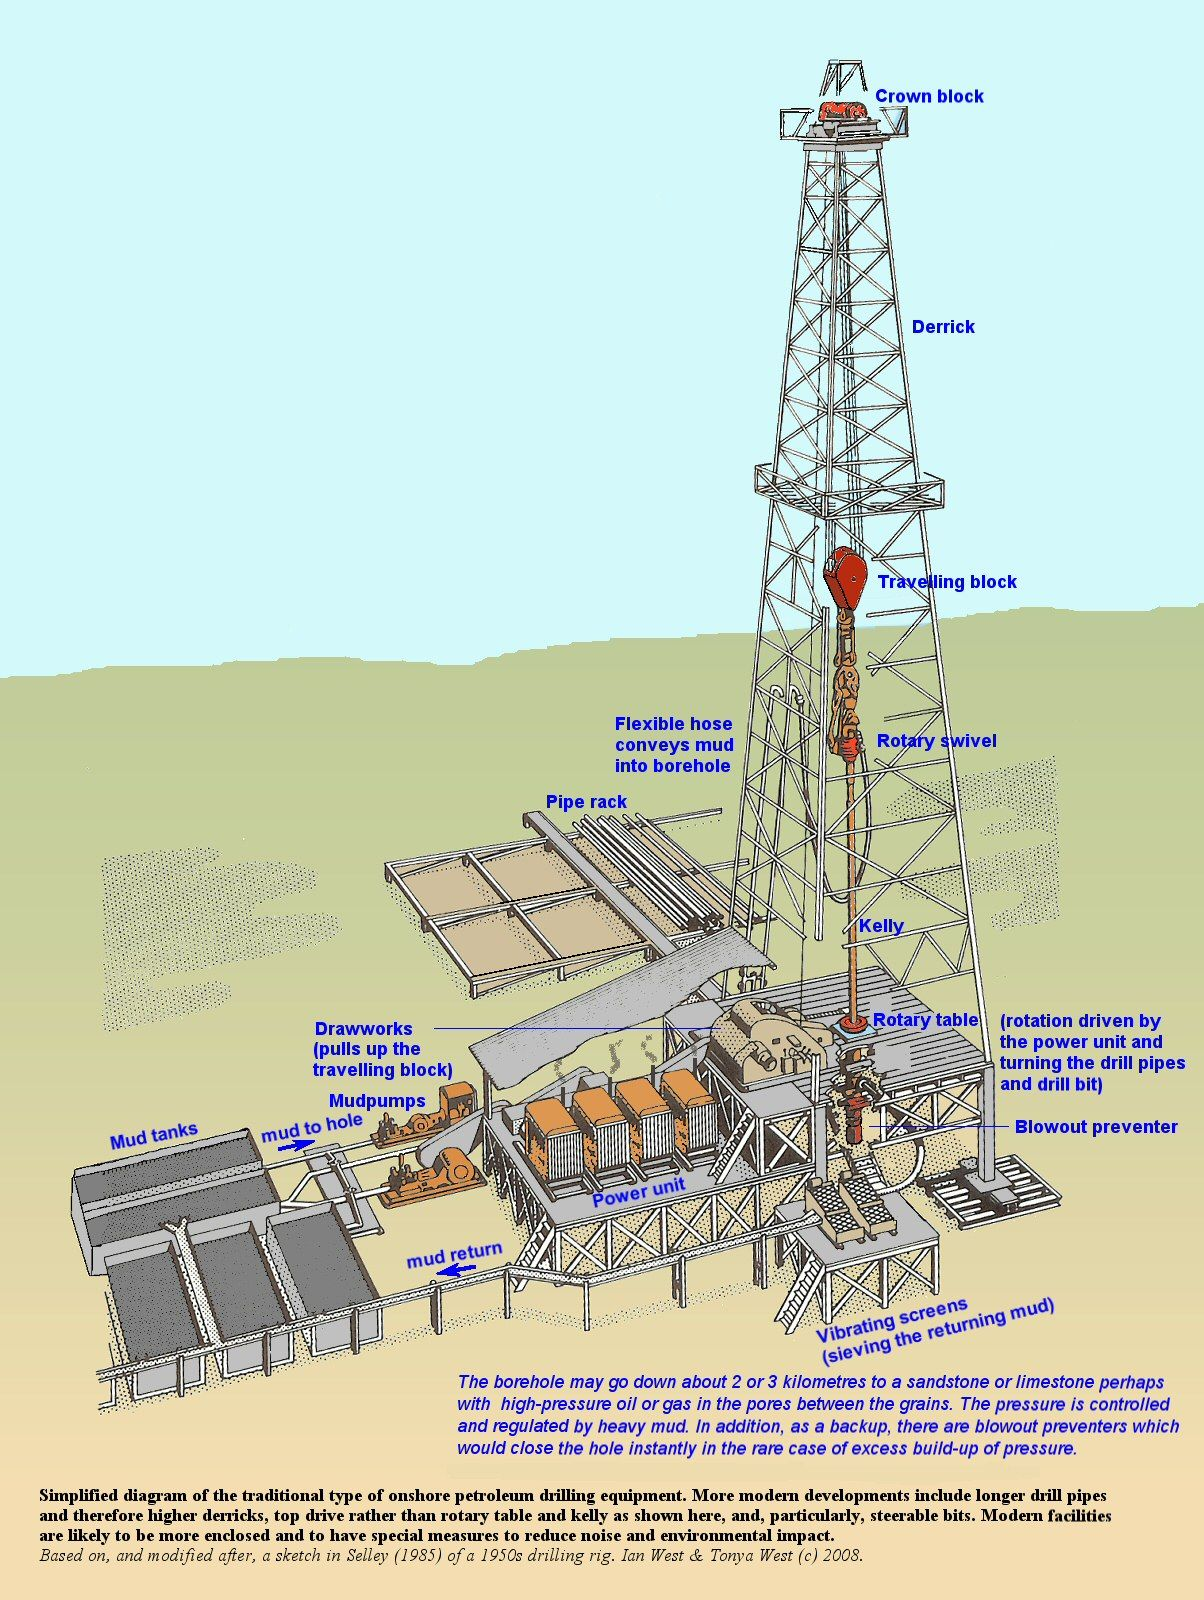 309129961898331202 besides Jack Up Rig as well Cac Loai Gian Khoan additionally Biofluids  bining Environmental Responsibility Performance 10644 likewise Setting Up Your  puter For Audio Production. on jack up rig diagram